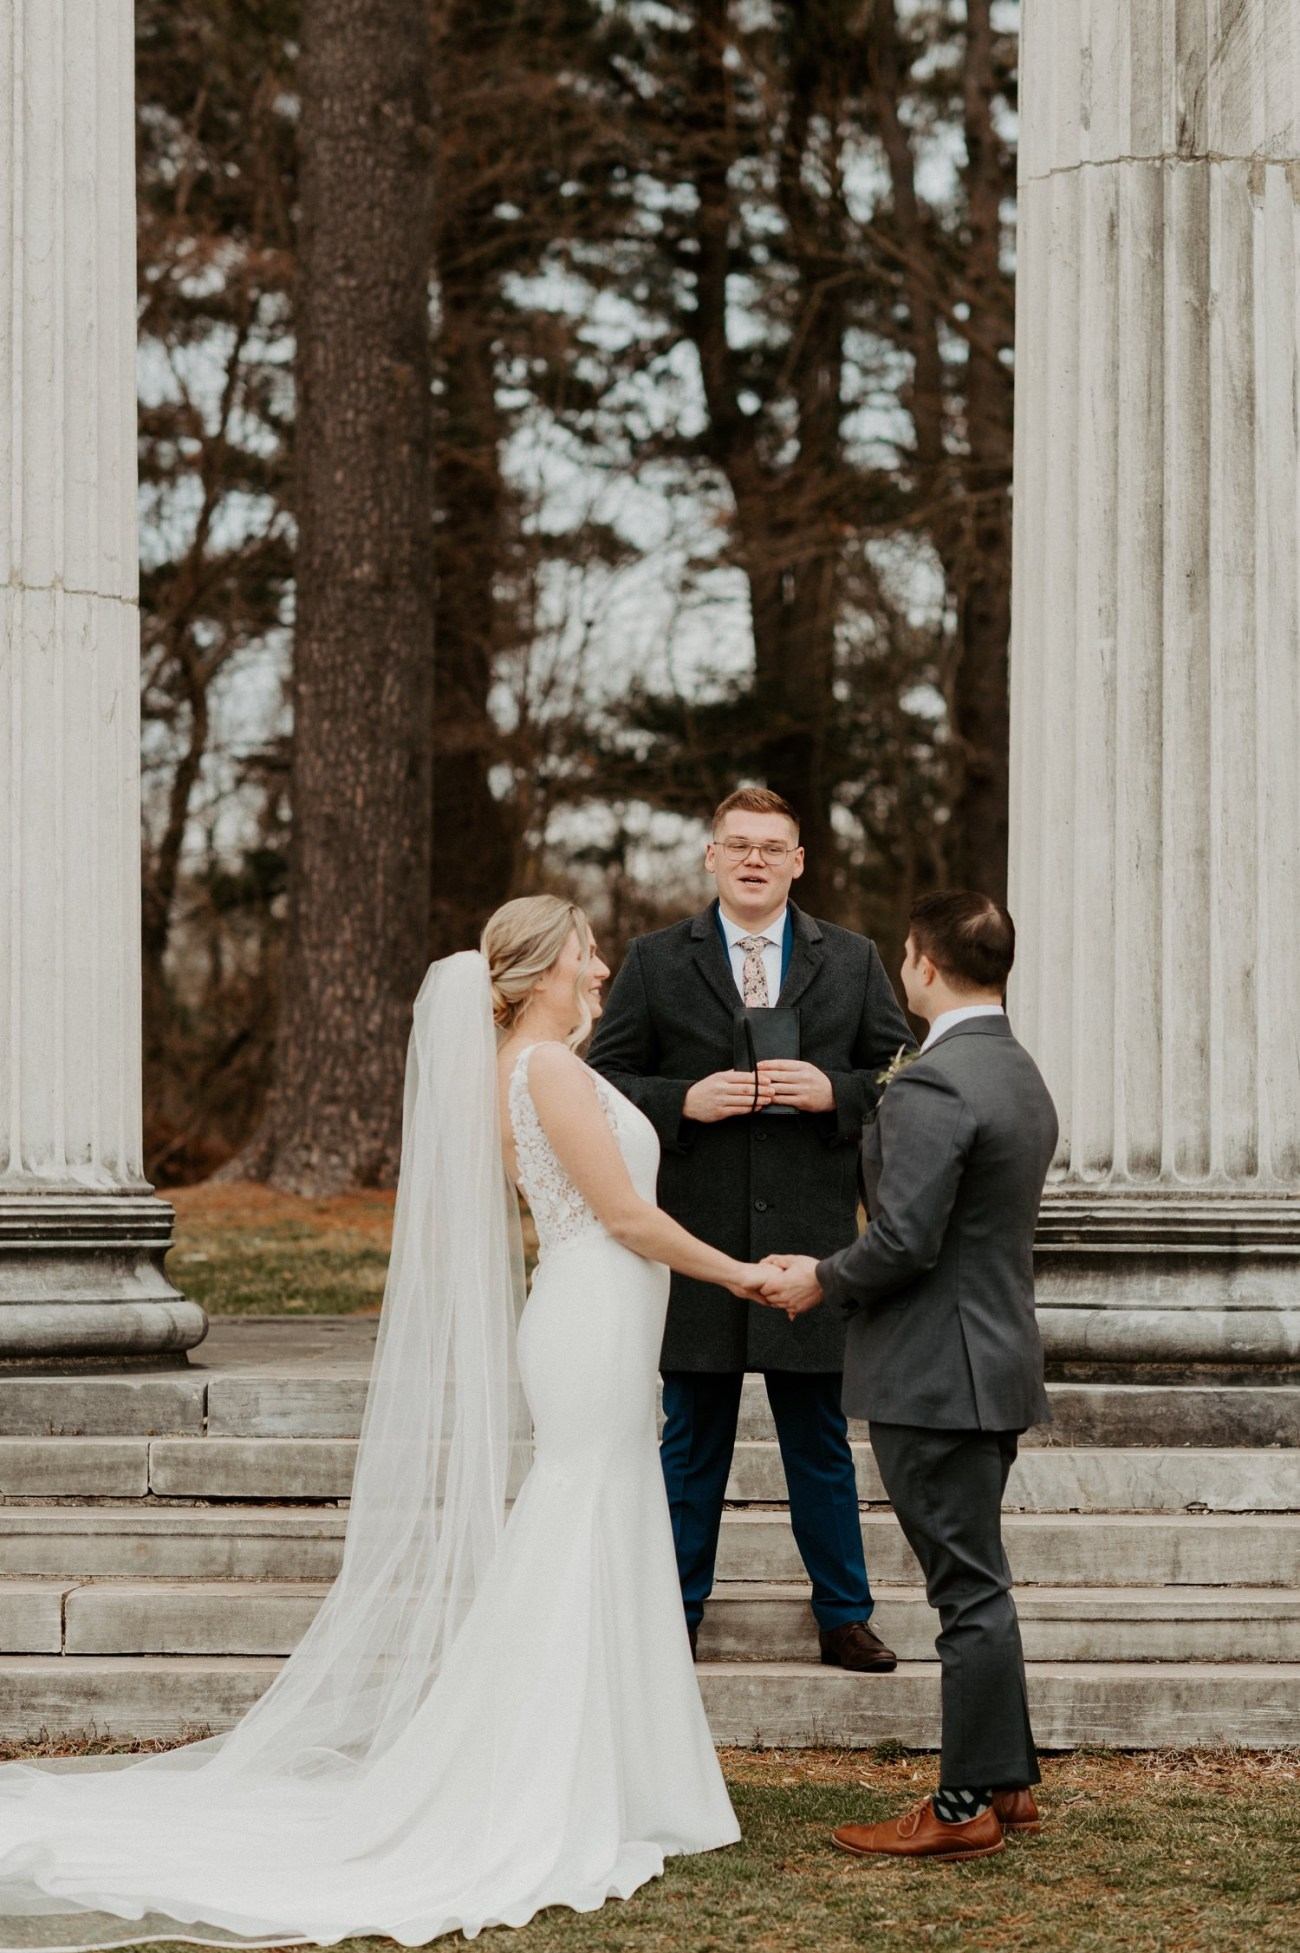 Princeton Battlefield Wedding Princeton University Elopement New Jersey Wedding Photographer Anais Possamai Photography 08